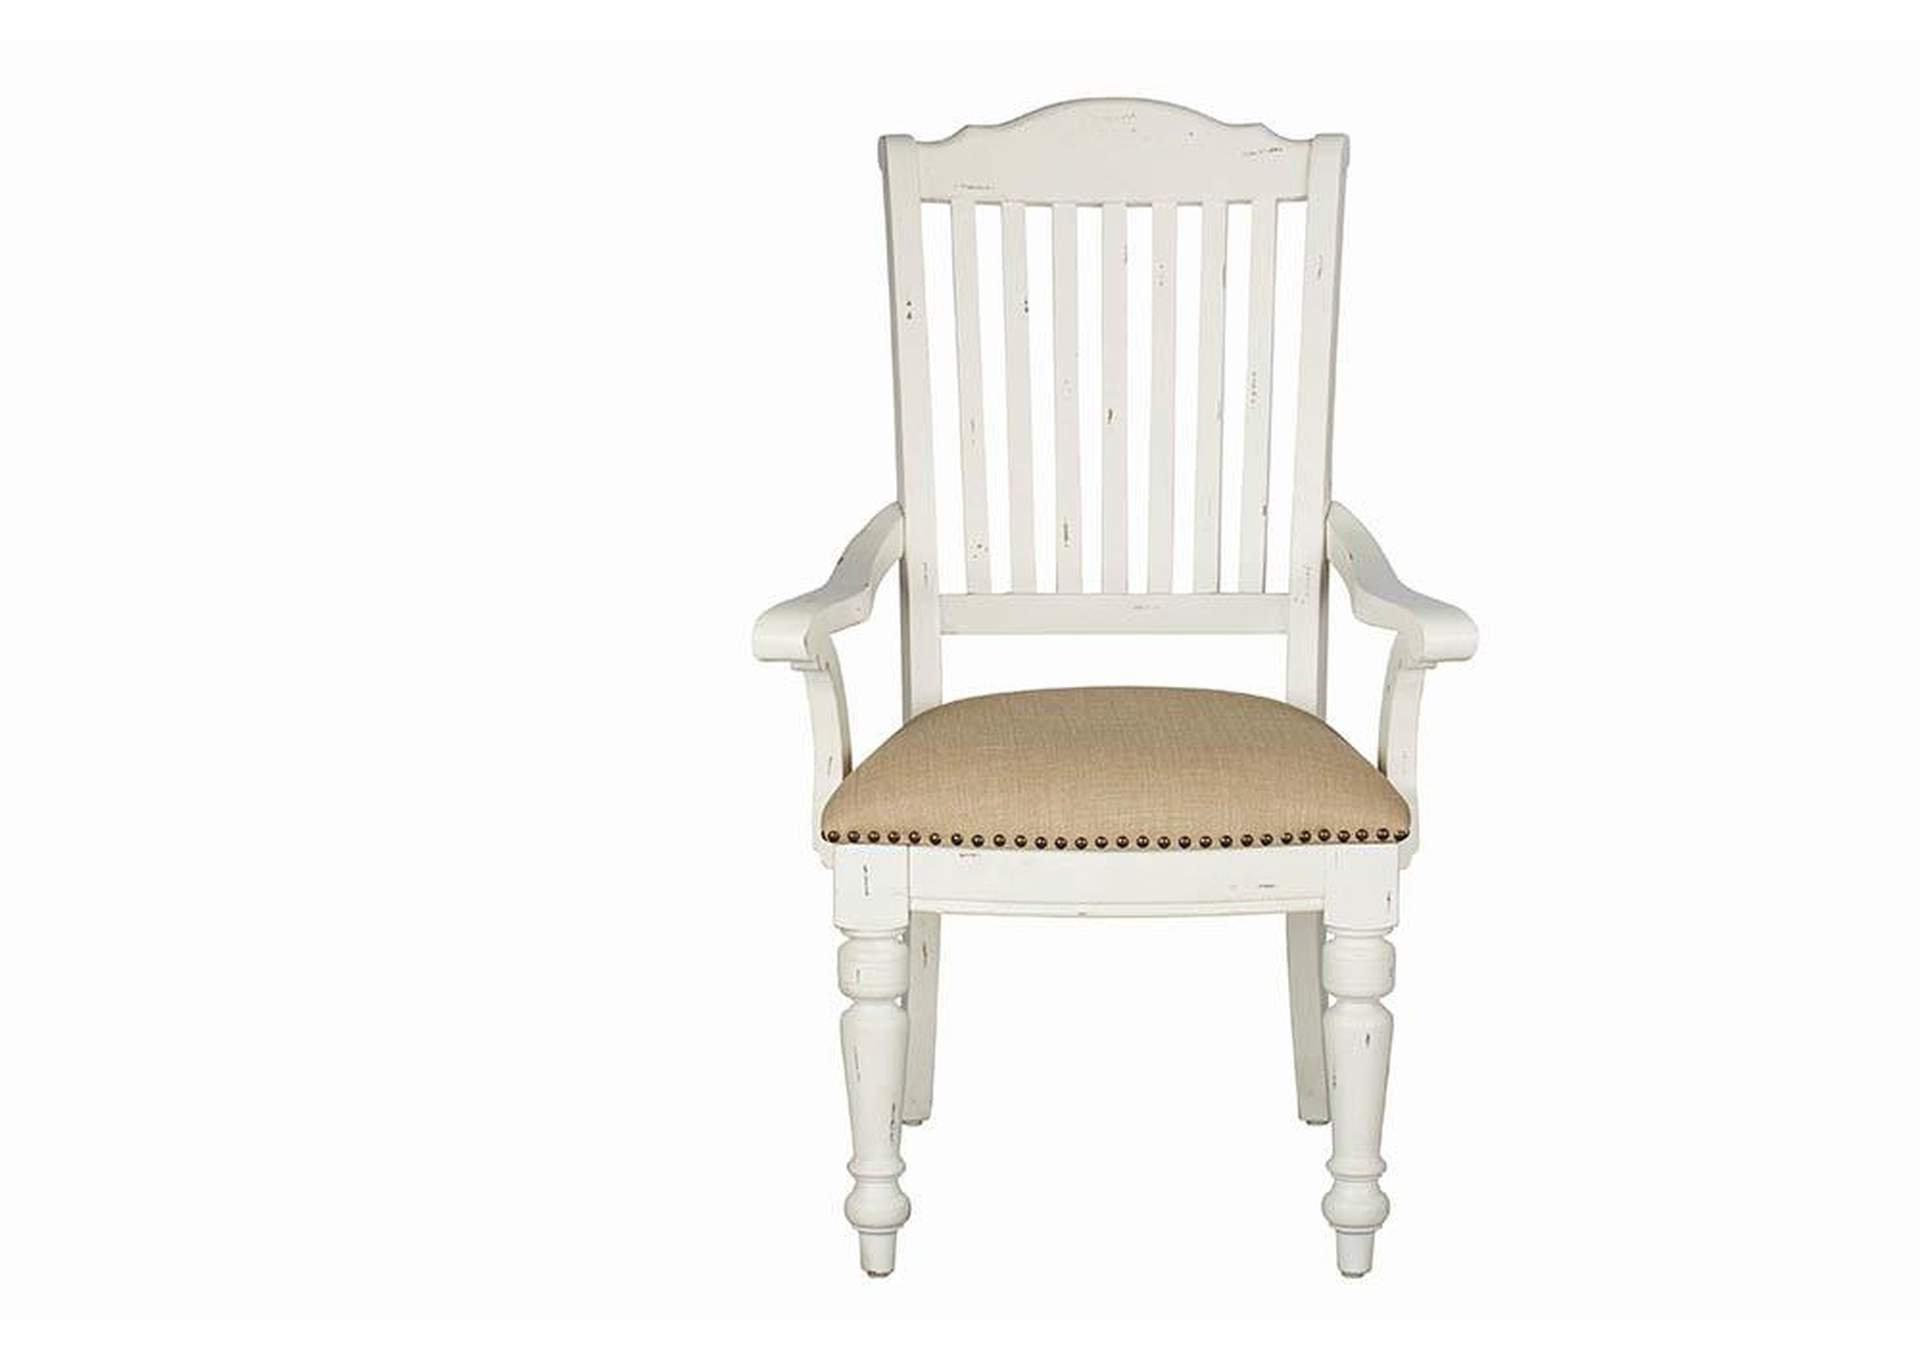 Simpson Slat Back Arm Chairs Barley And Vintage White (Set of 2),Coaster Furniture